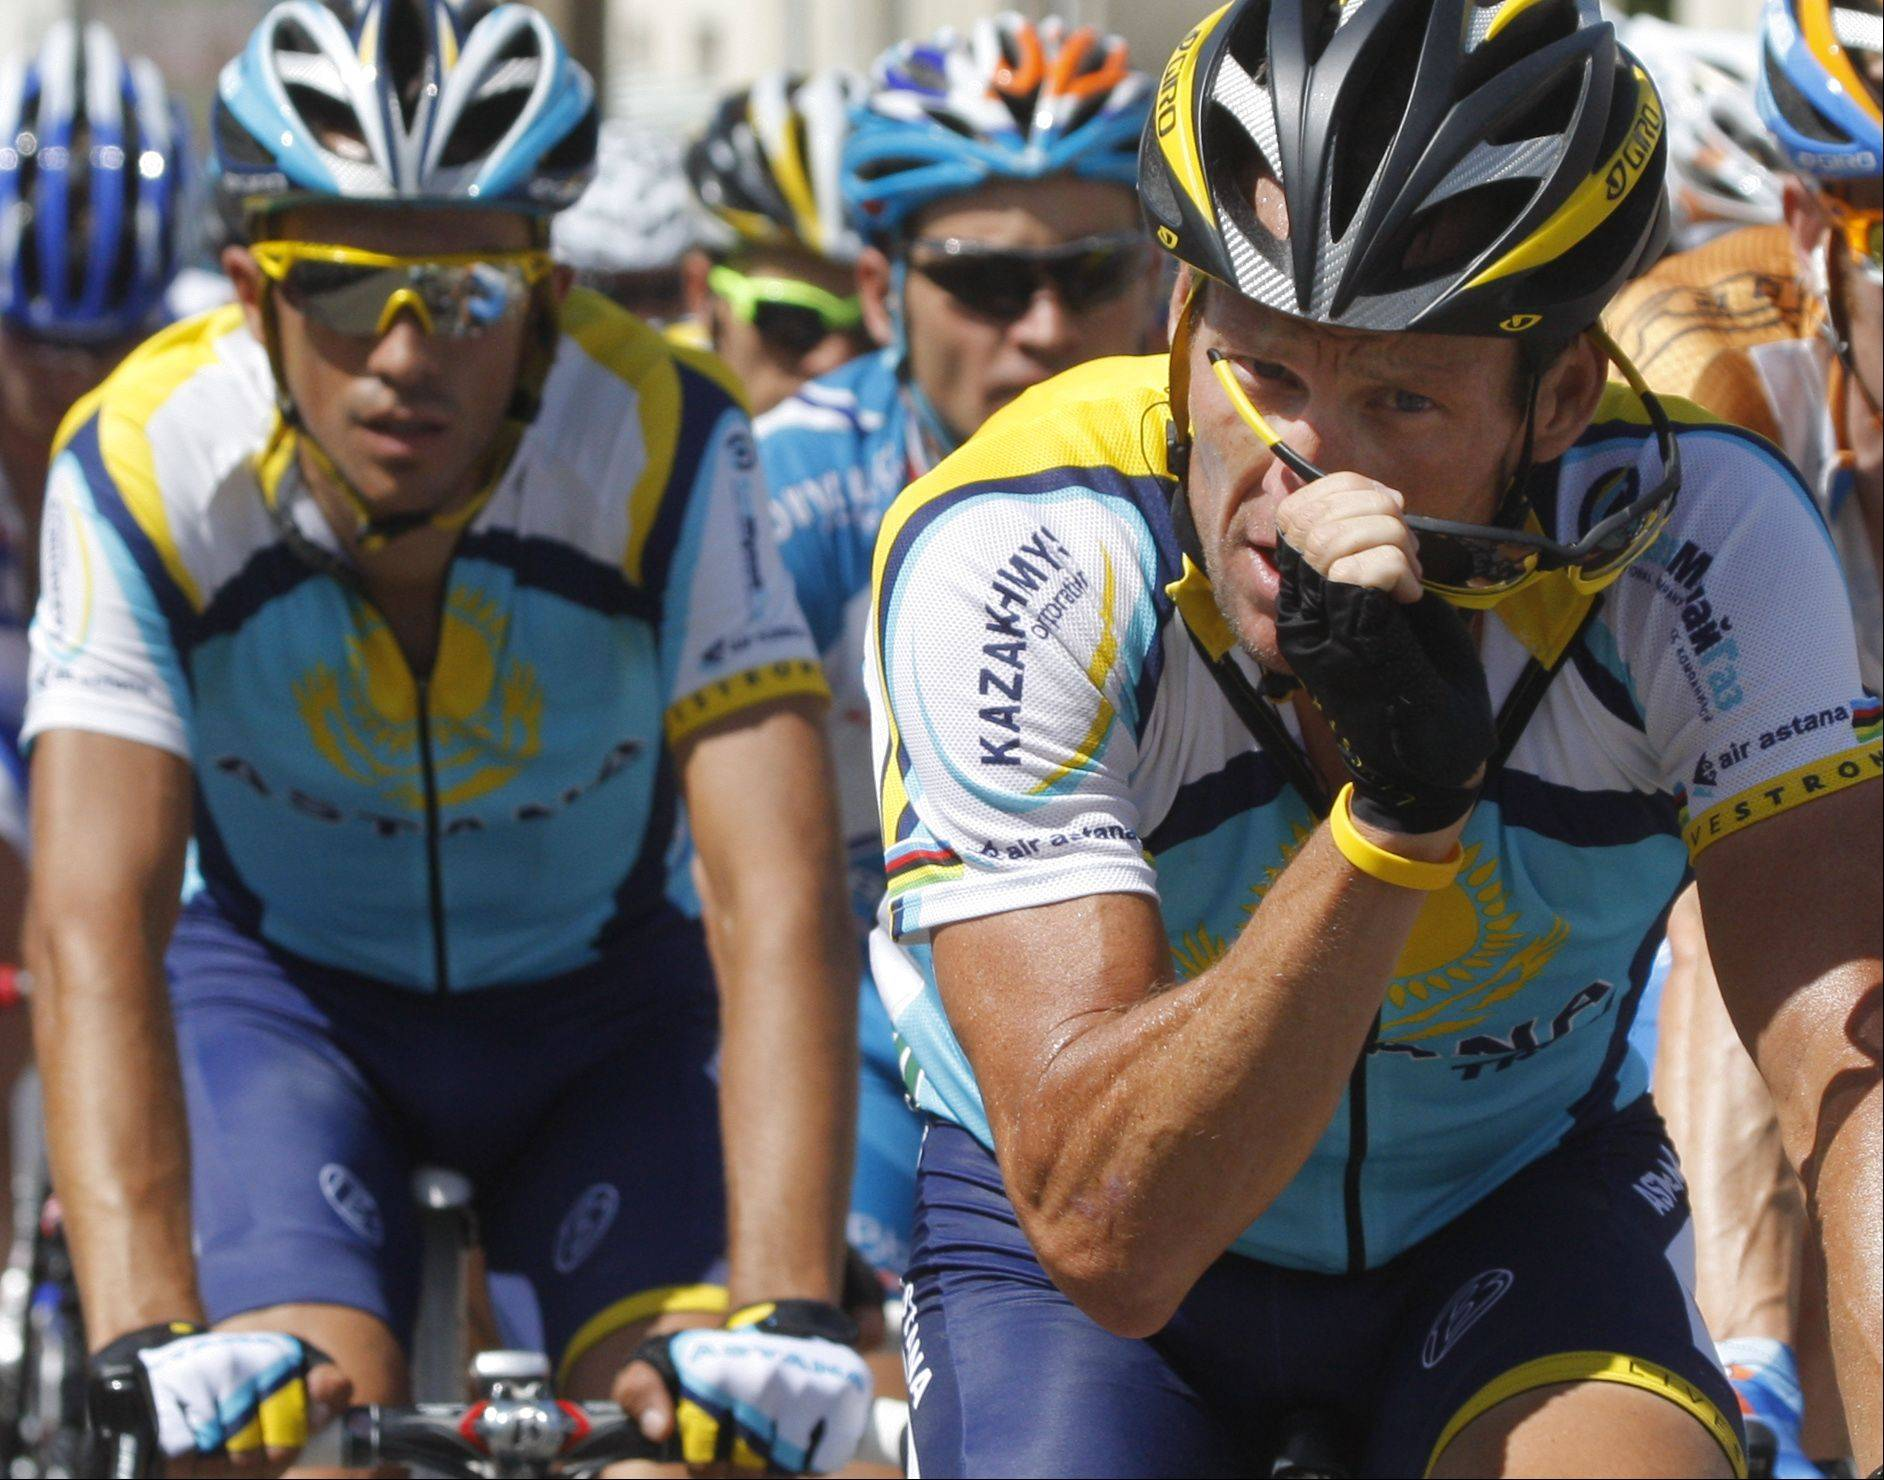 American seven-time Tour de France winner Lance Armstrong puts his sunglasses back on after wiping the sweat of his forehead, as teammate and rival Alberto Contador of Spain, left, follows during the 12th stage of the Tour de France cycling race over 211.5 kilometers (131.5 miles) with start in Tonnere and finish in Vittel, eastern France, Thursday July 16, 2009.